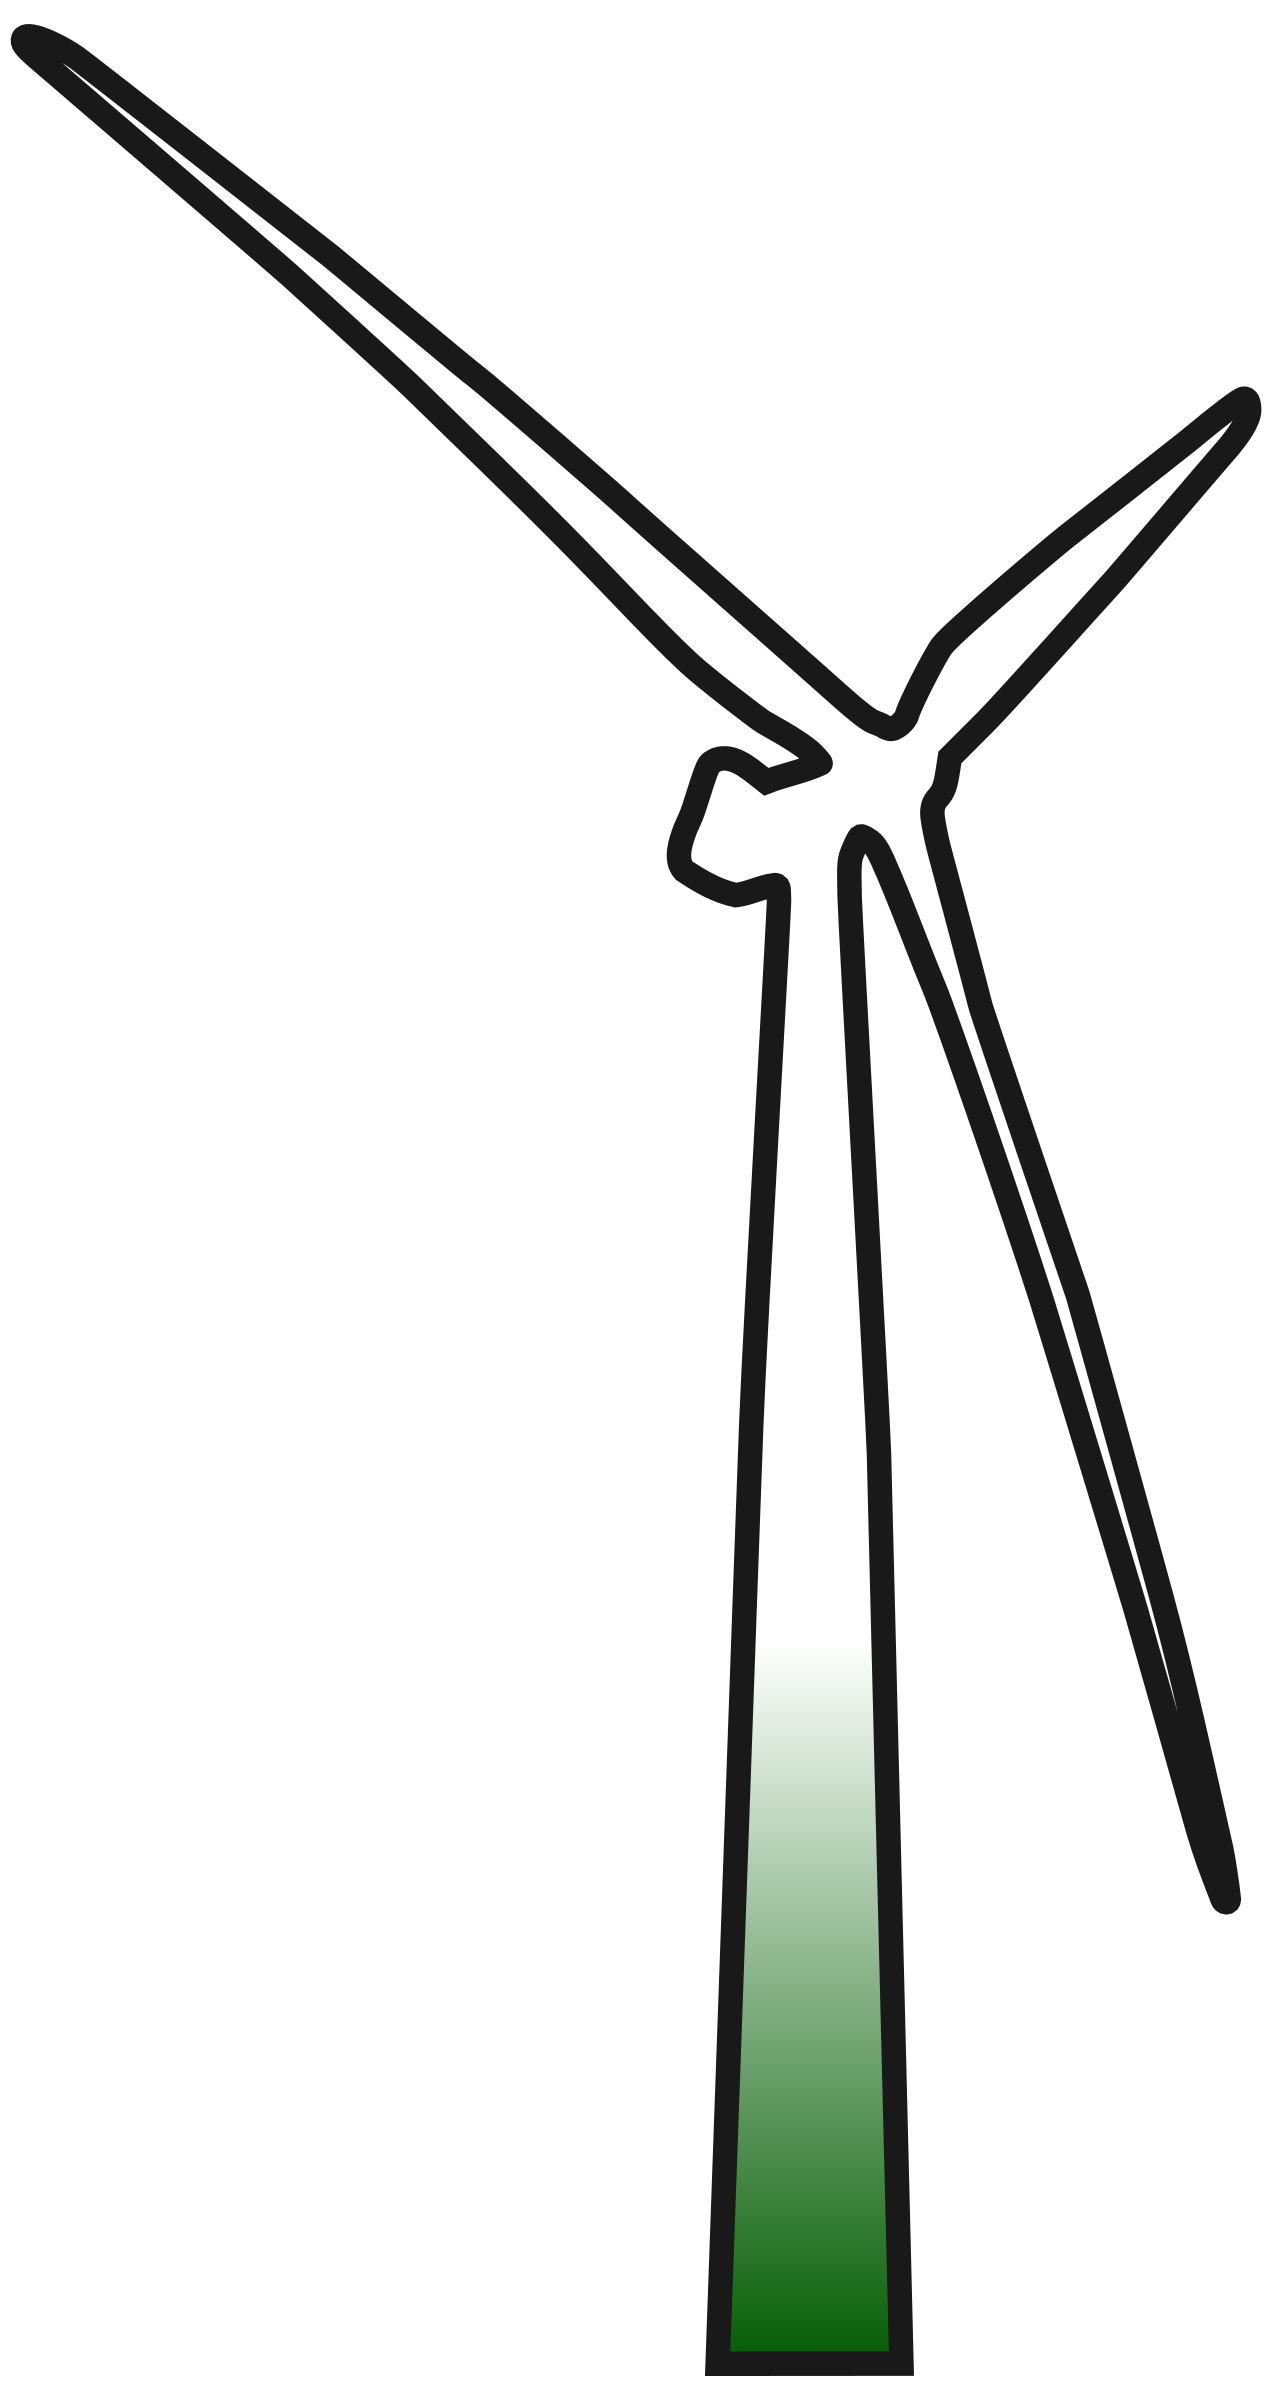 Wind Turbine 2 by erlandh